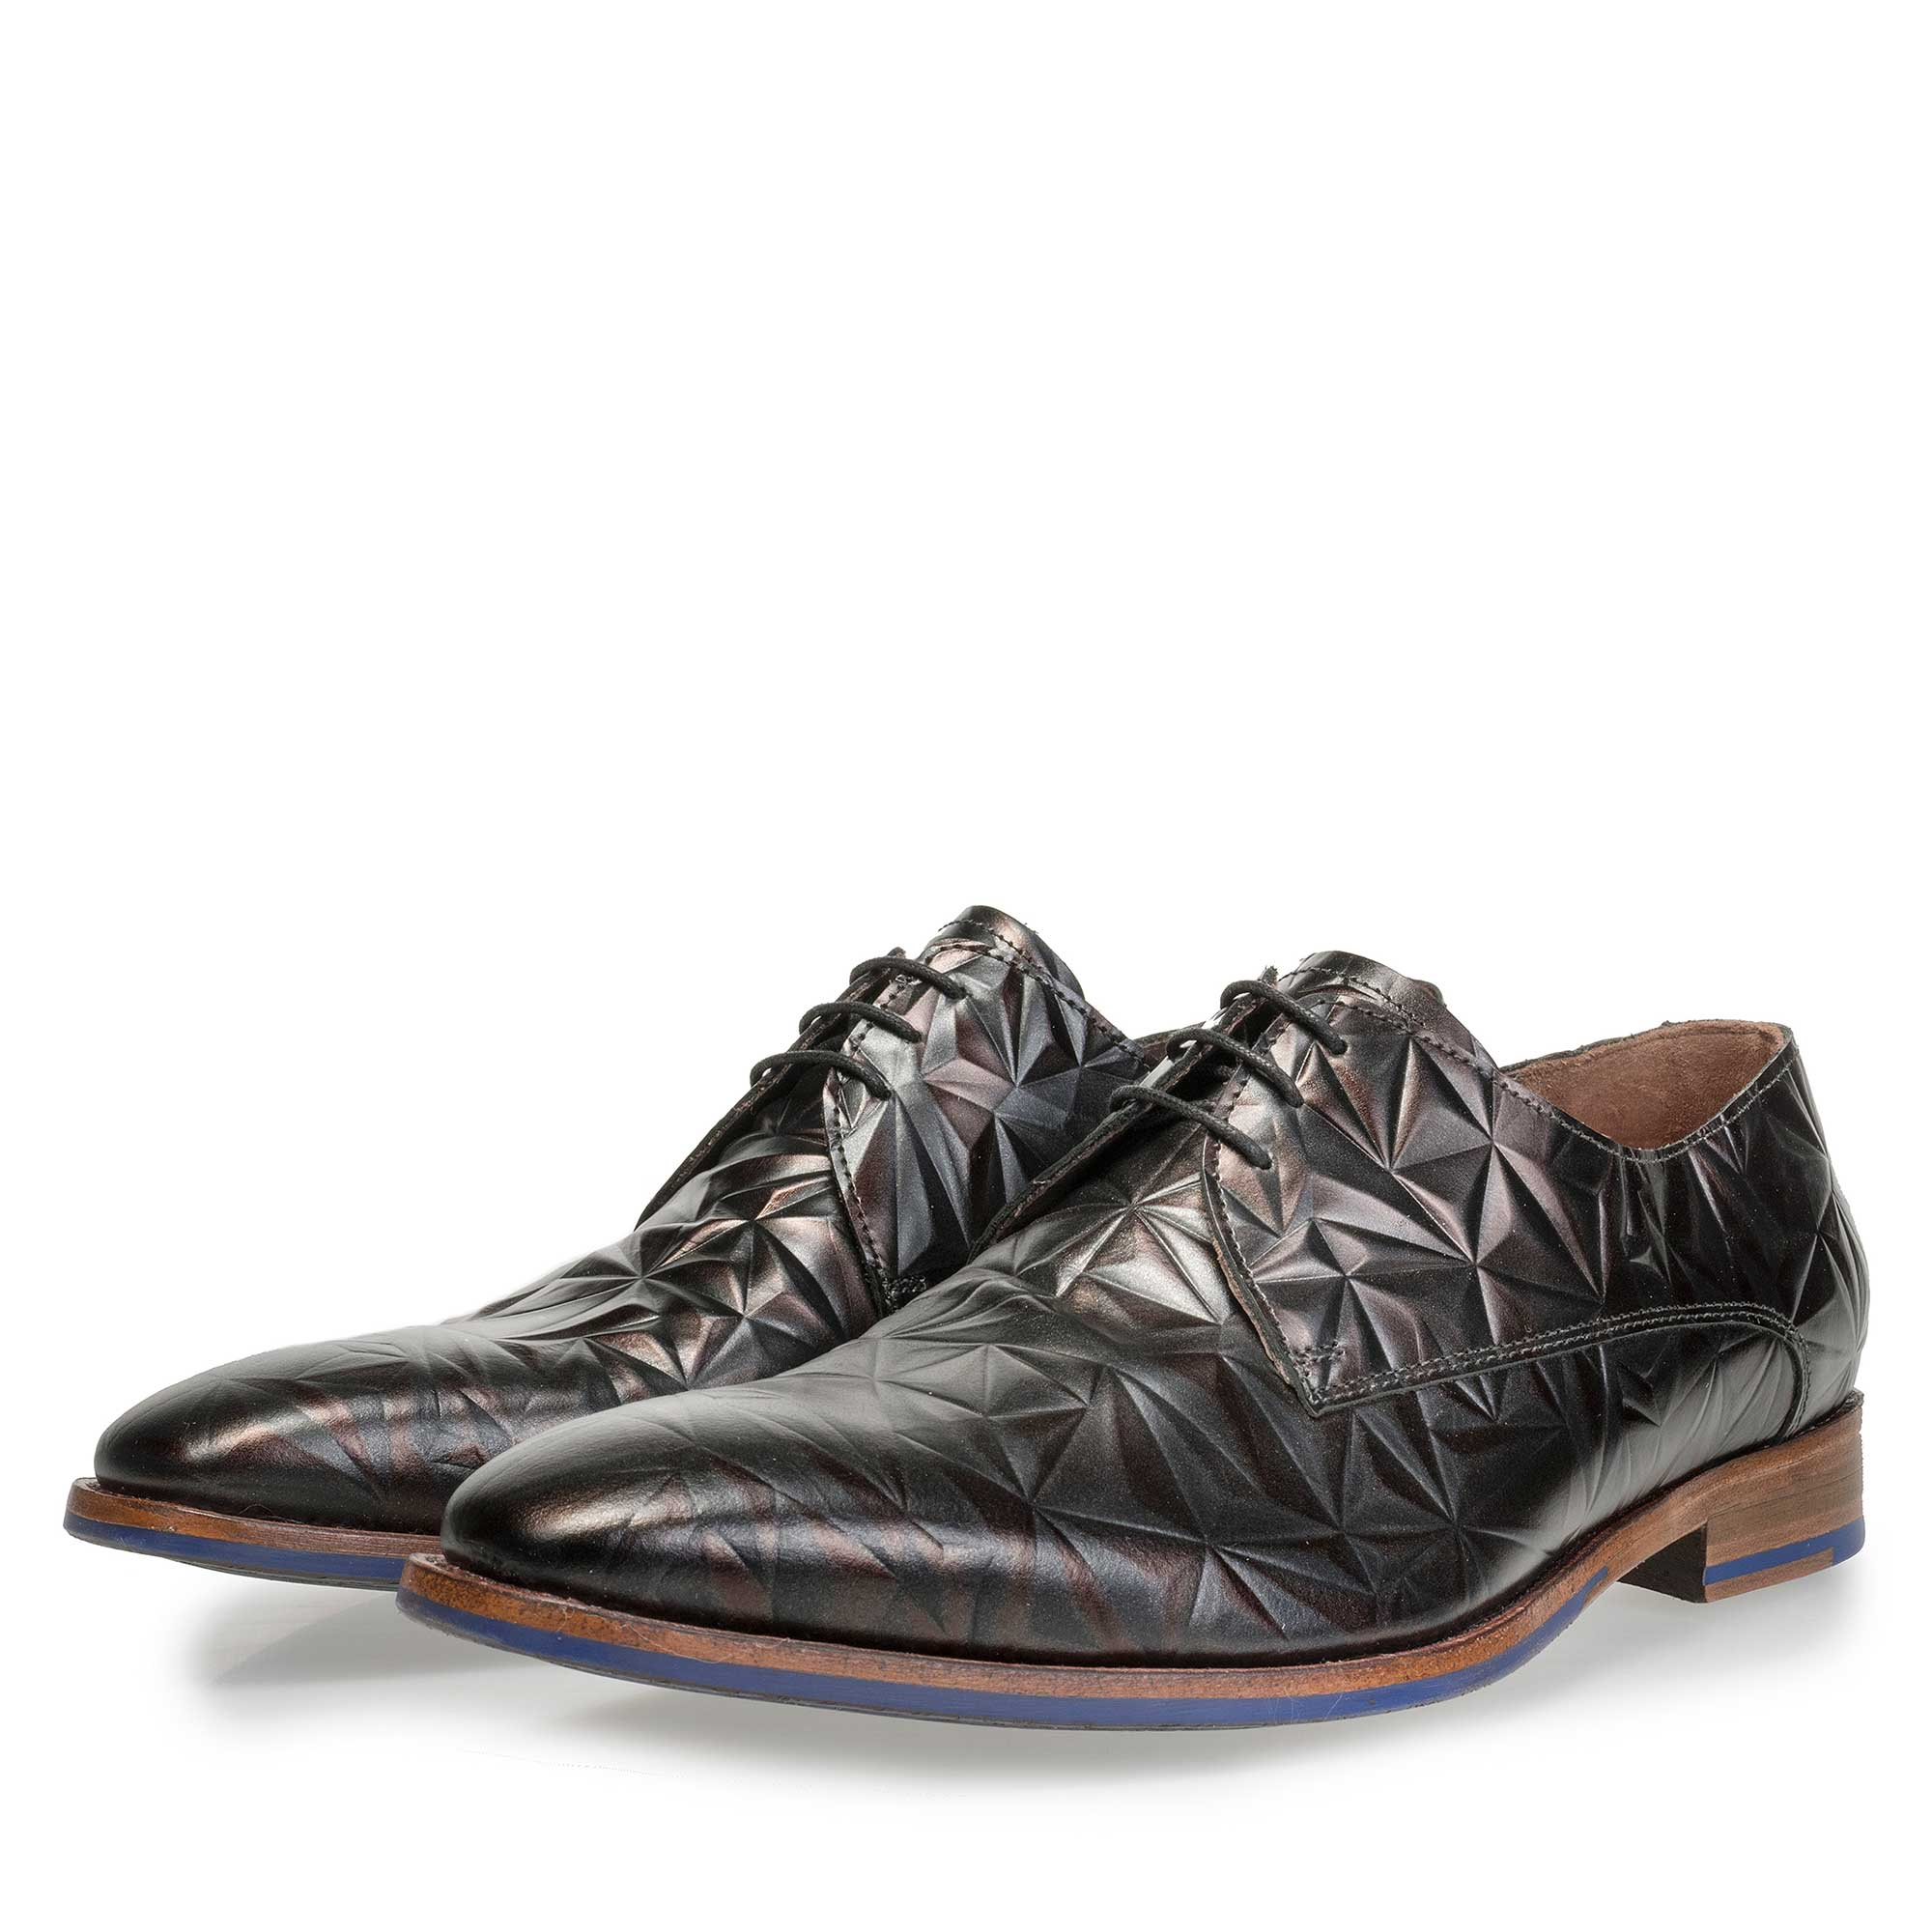 14237/04 - Floris van Bommel men's dark brown leather lace shoe finished with a black 3D print